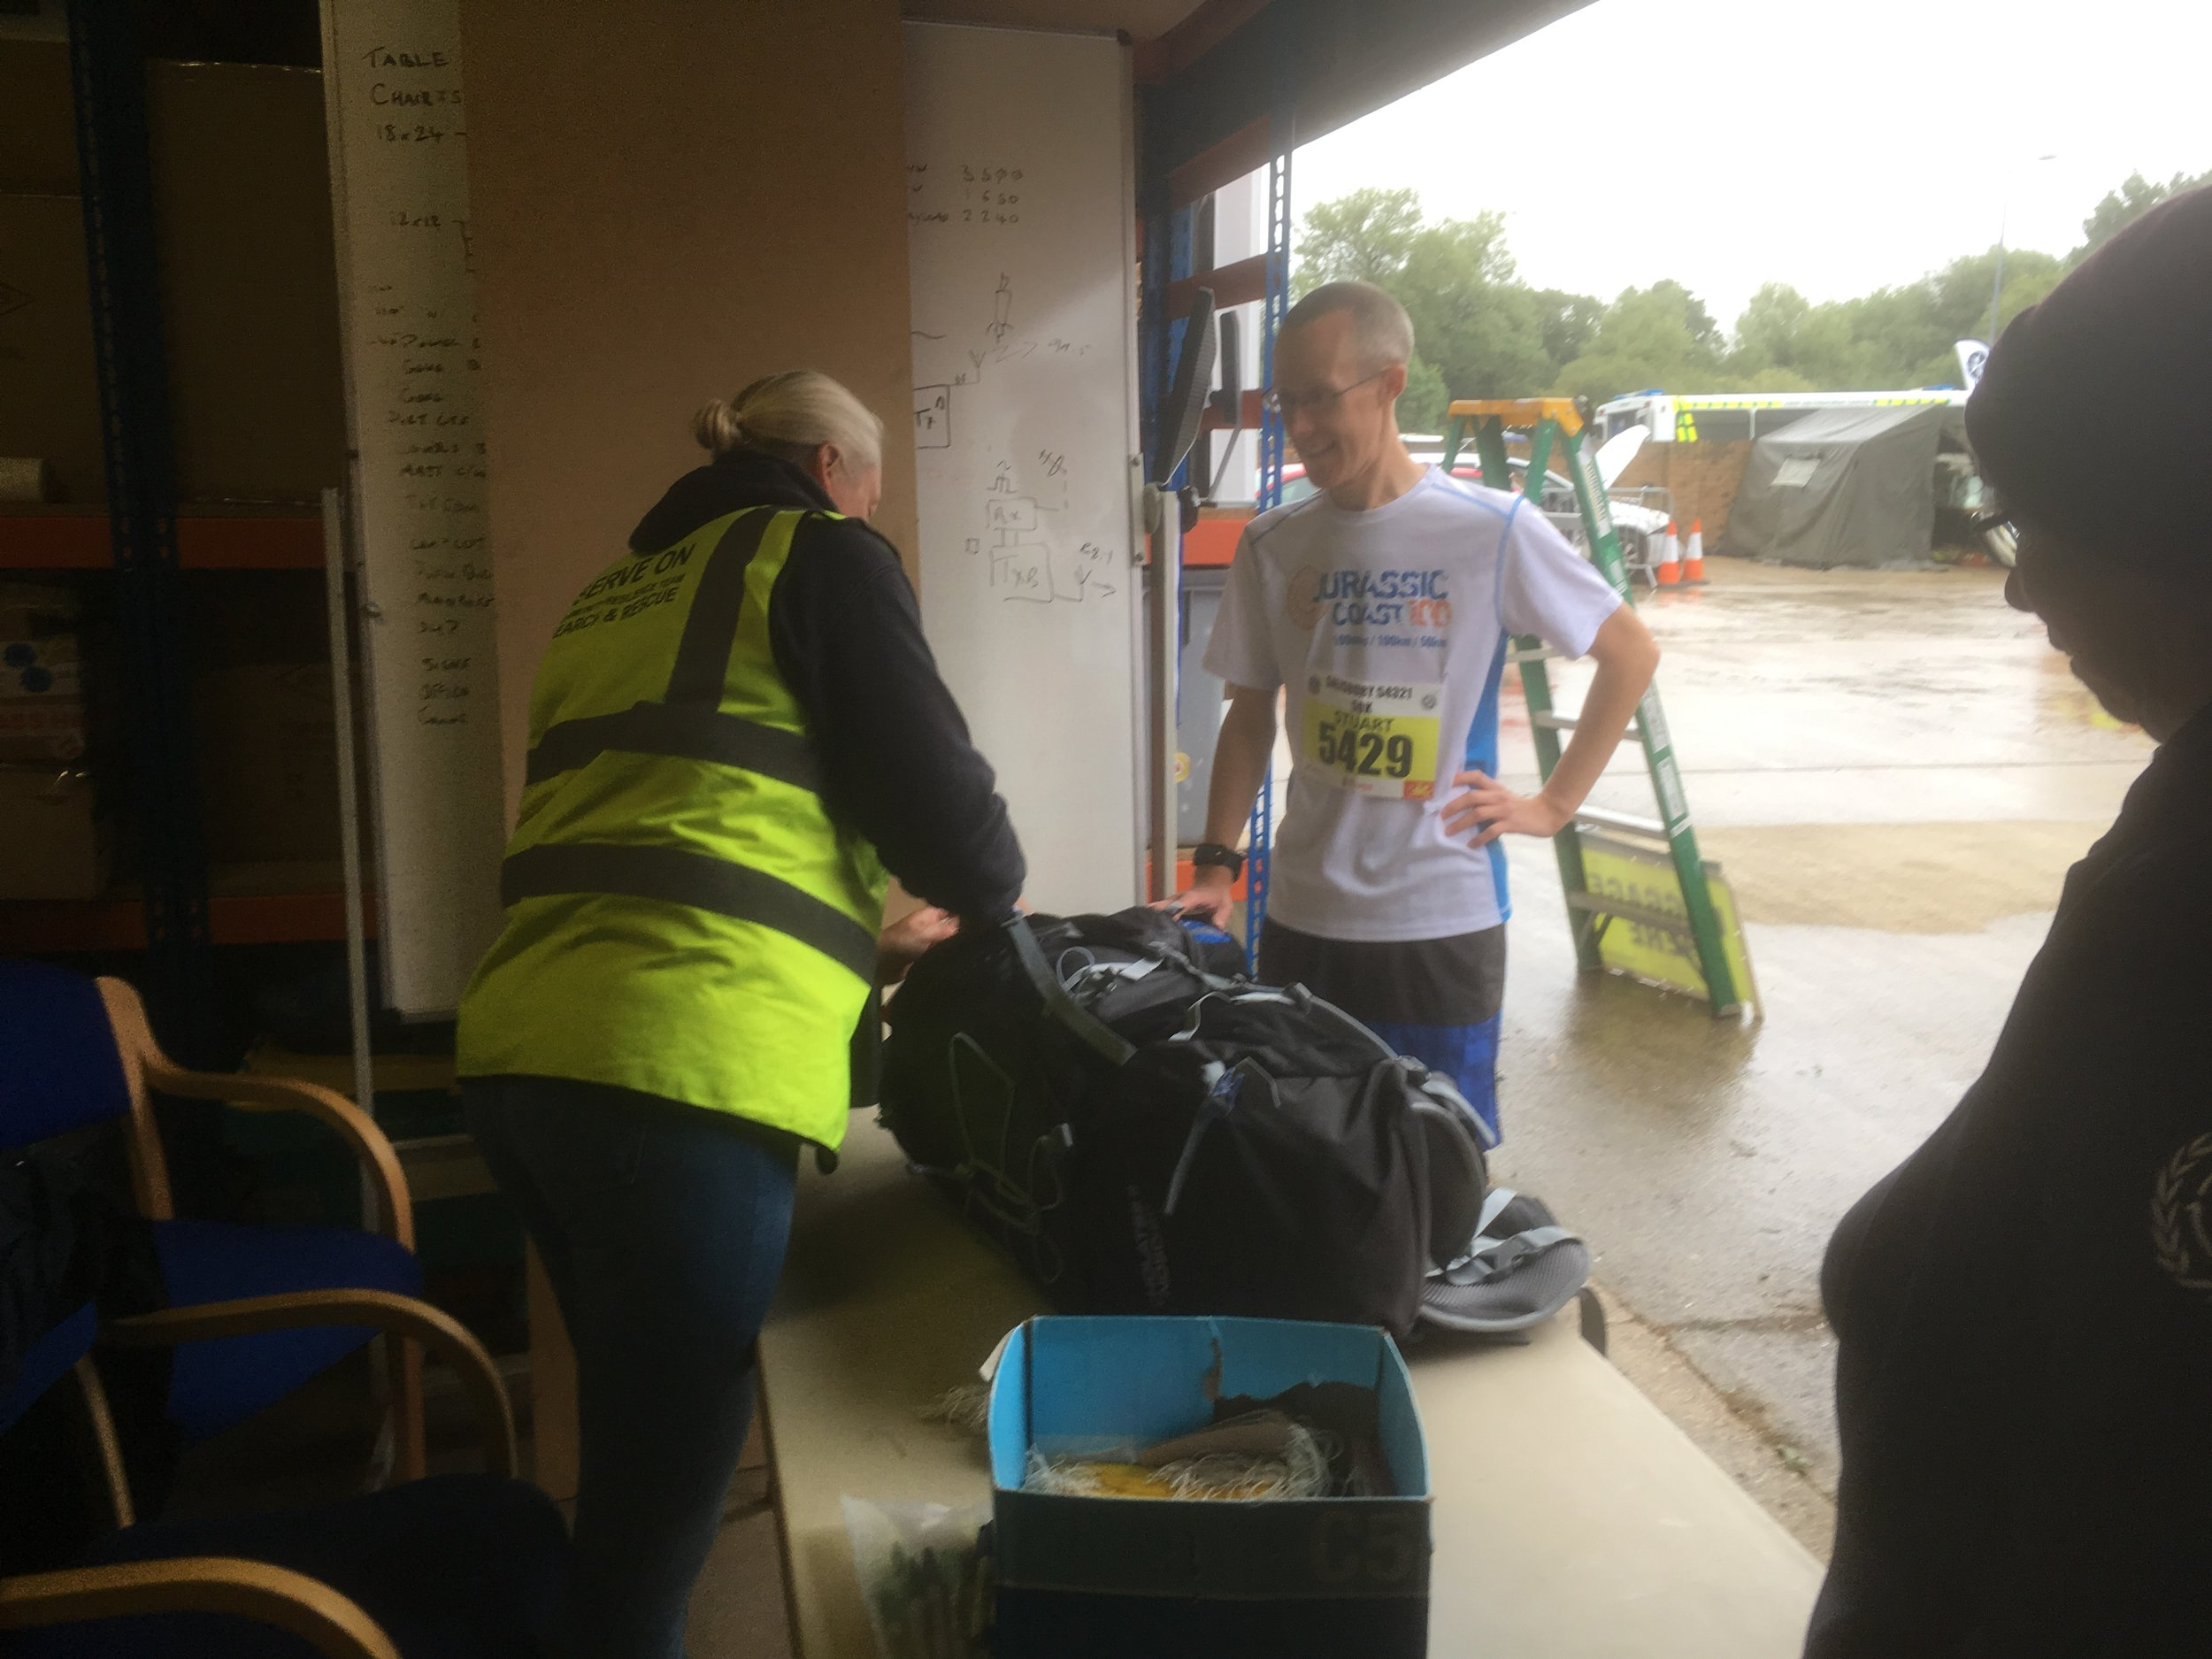 Becky and Wendy providing the baggage storage for runners taking part in the Salisbury 5-4-3-2-1 event.